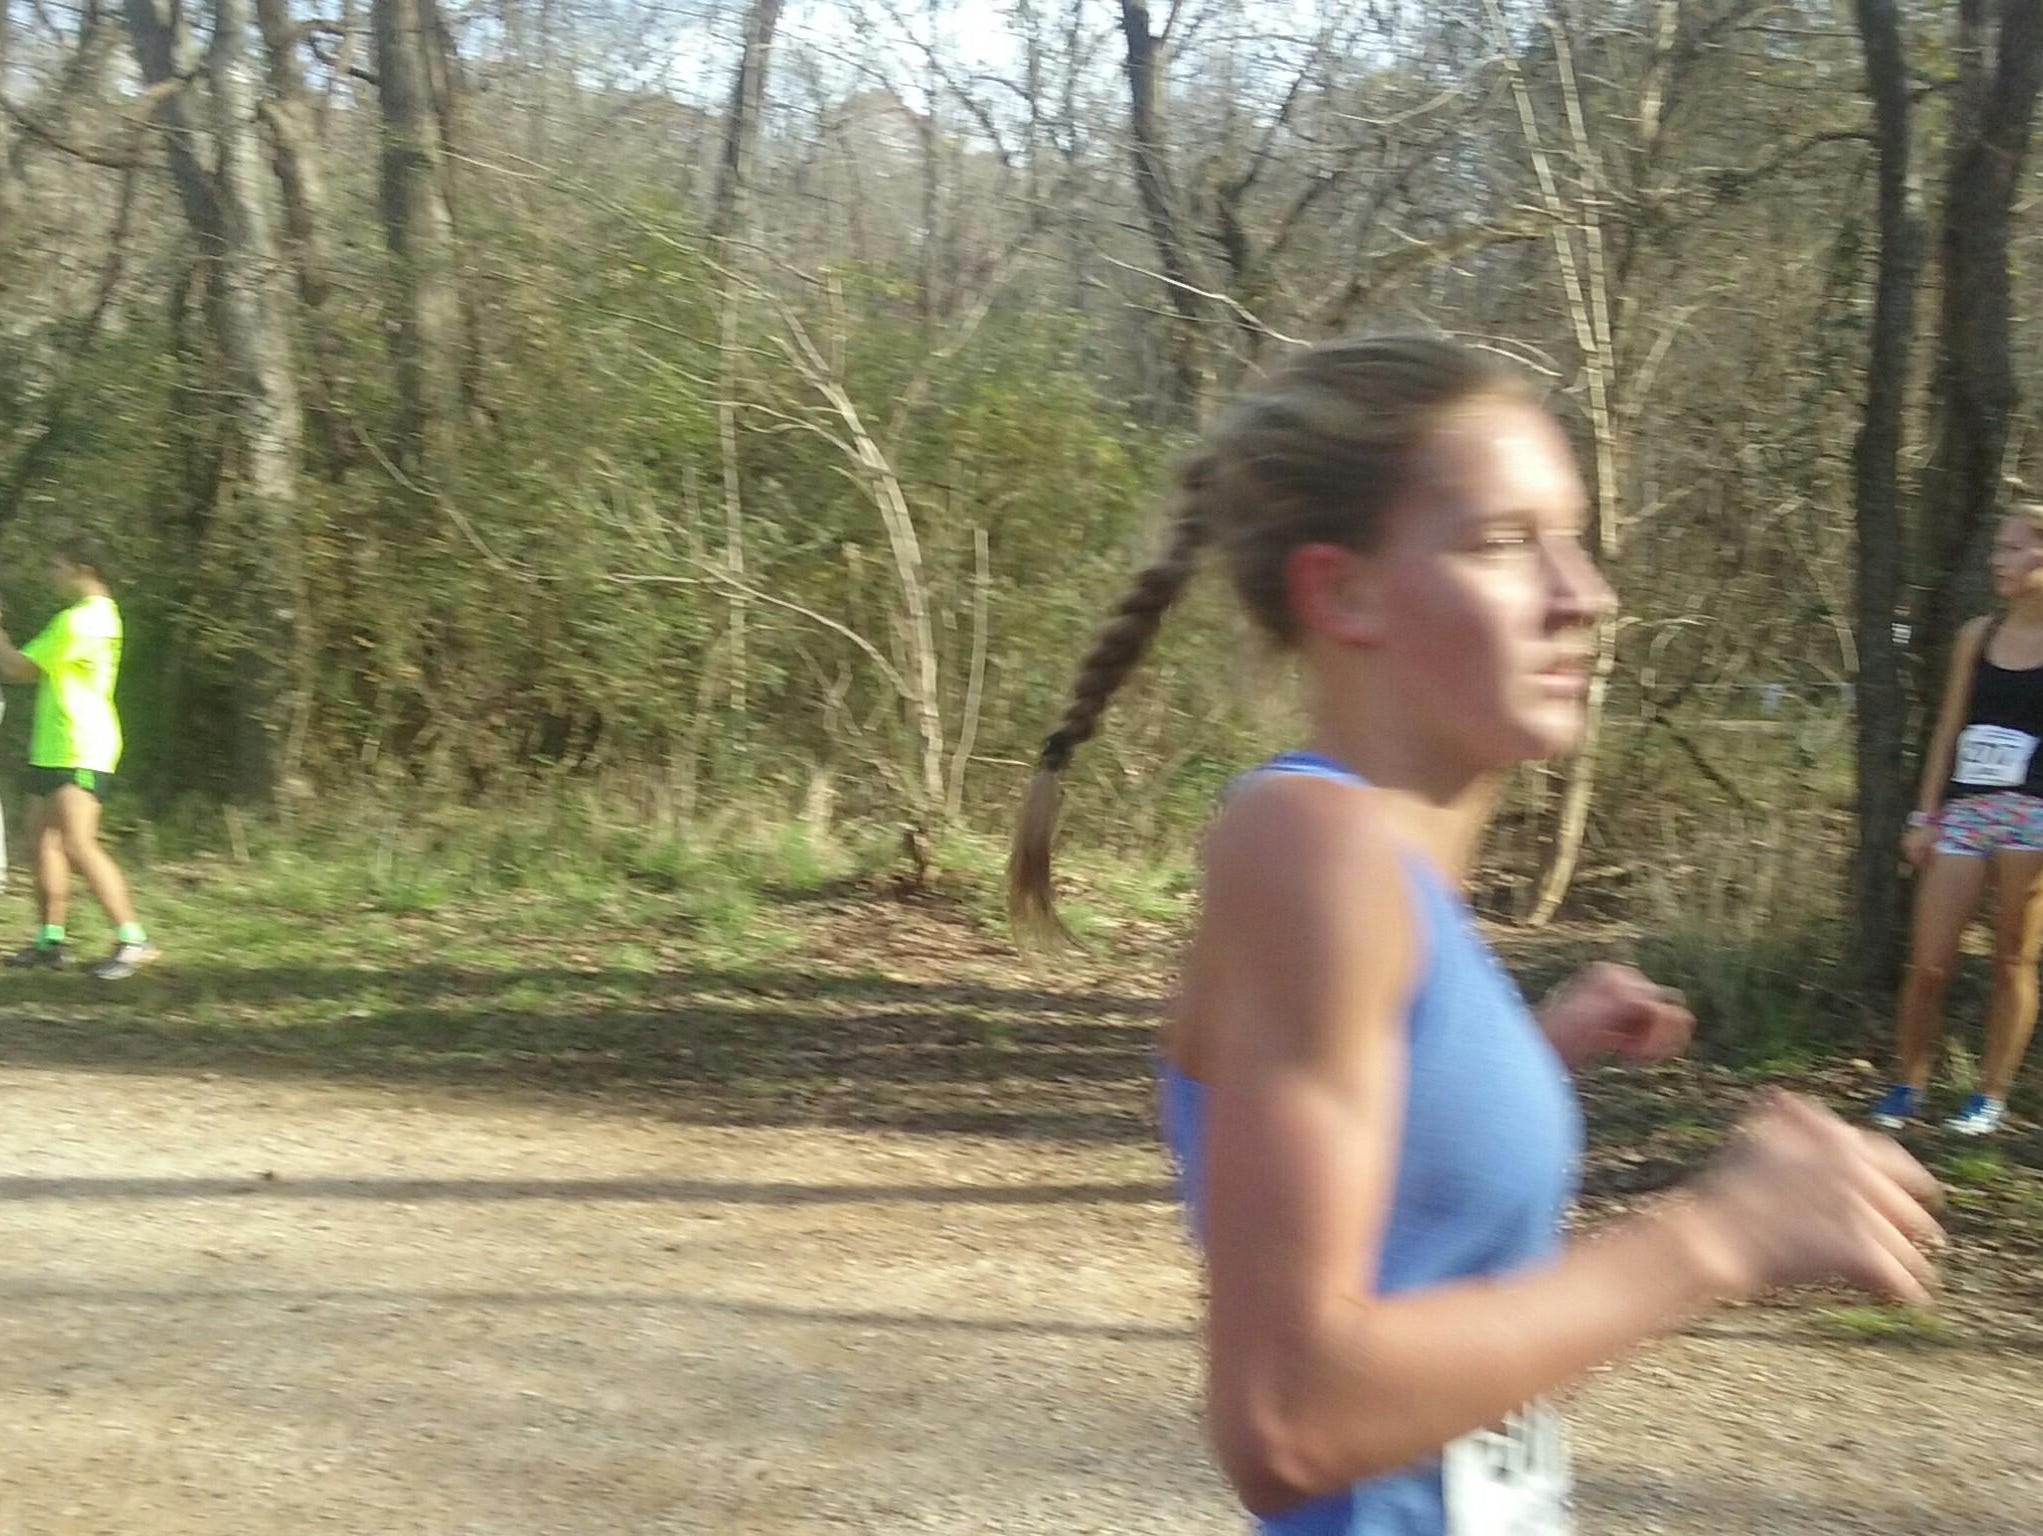 Reynolds senior Anna Vess has qualified for the Dec. 12 Foot Locker national cross country meet in San Diego.